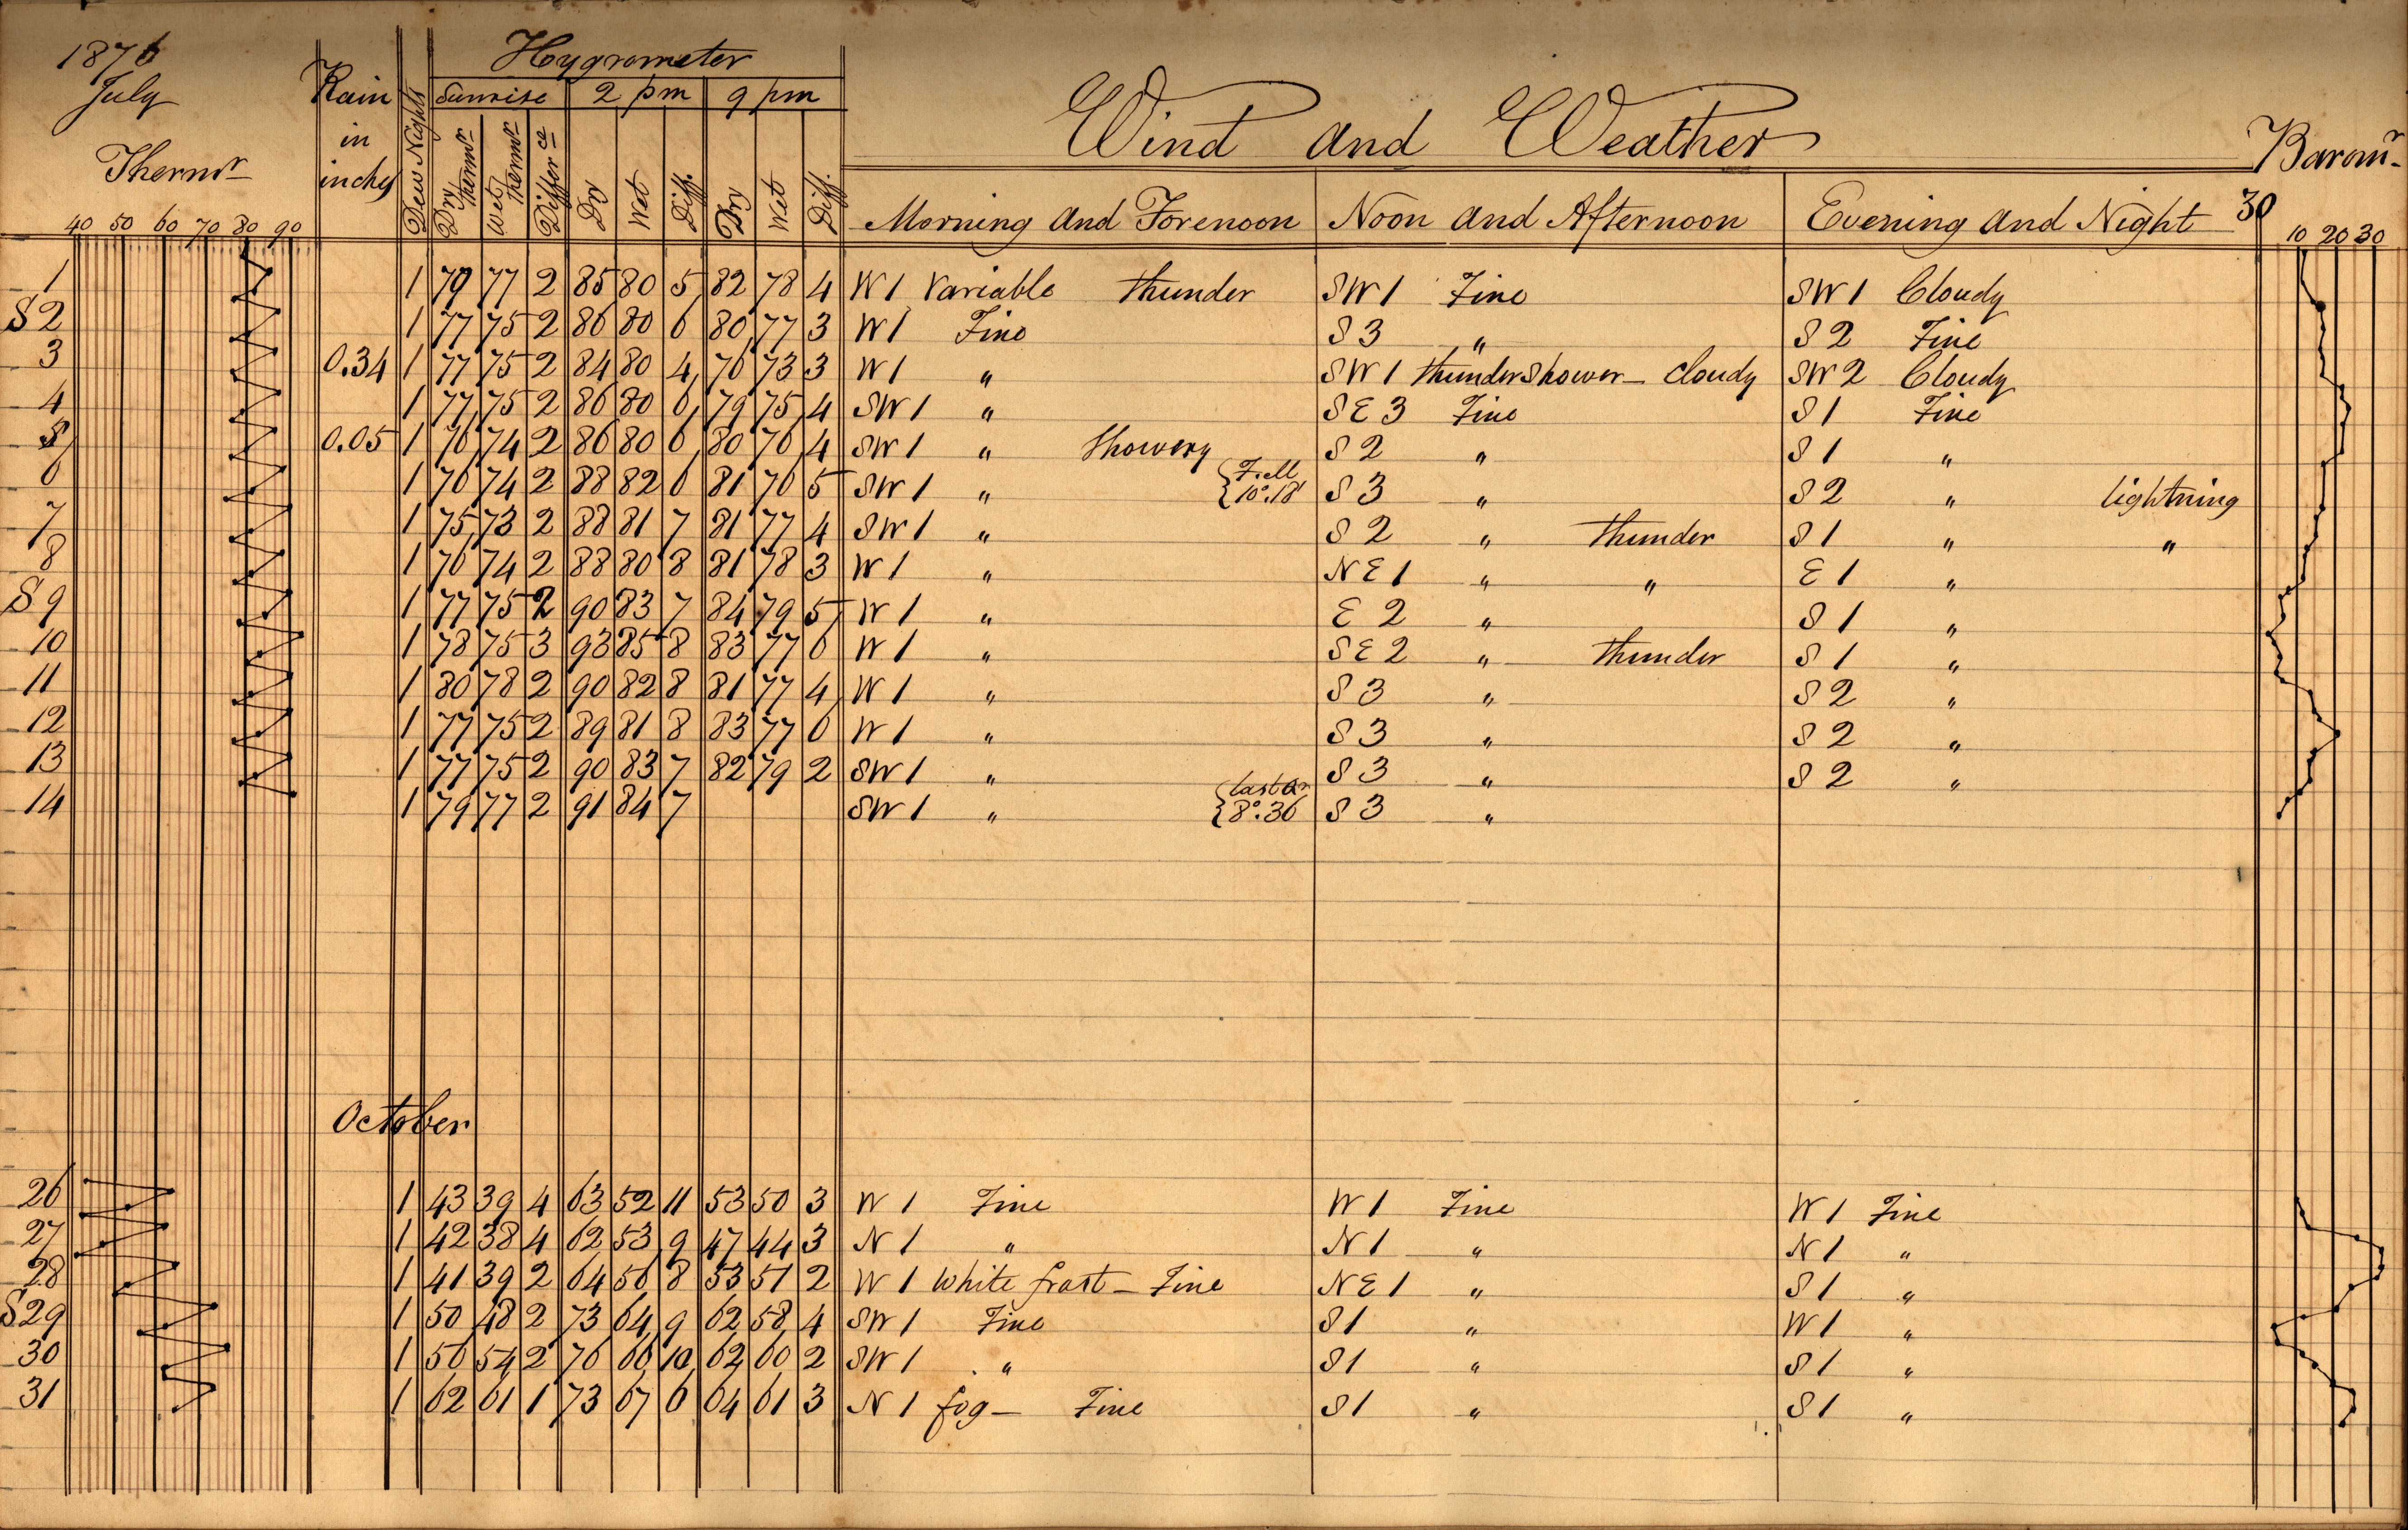 Volume 6: Daily Observations, July 1-14, 1876, and October 26-31, 1876